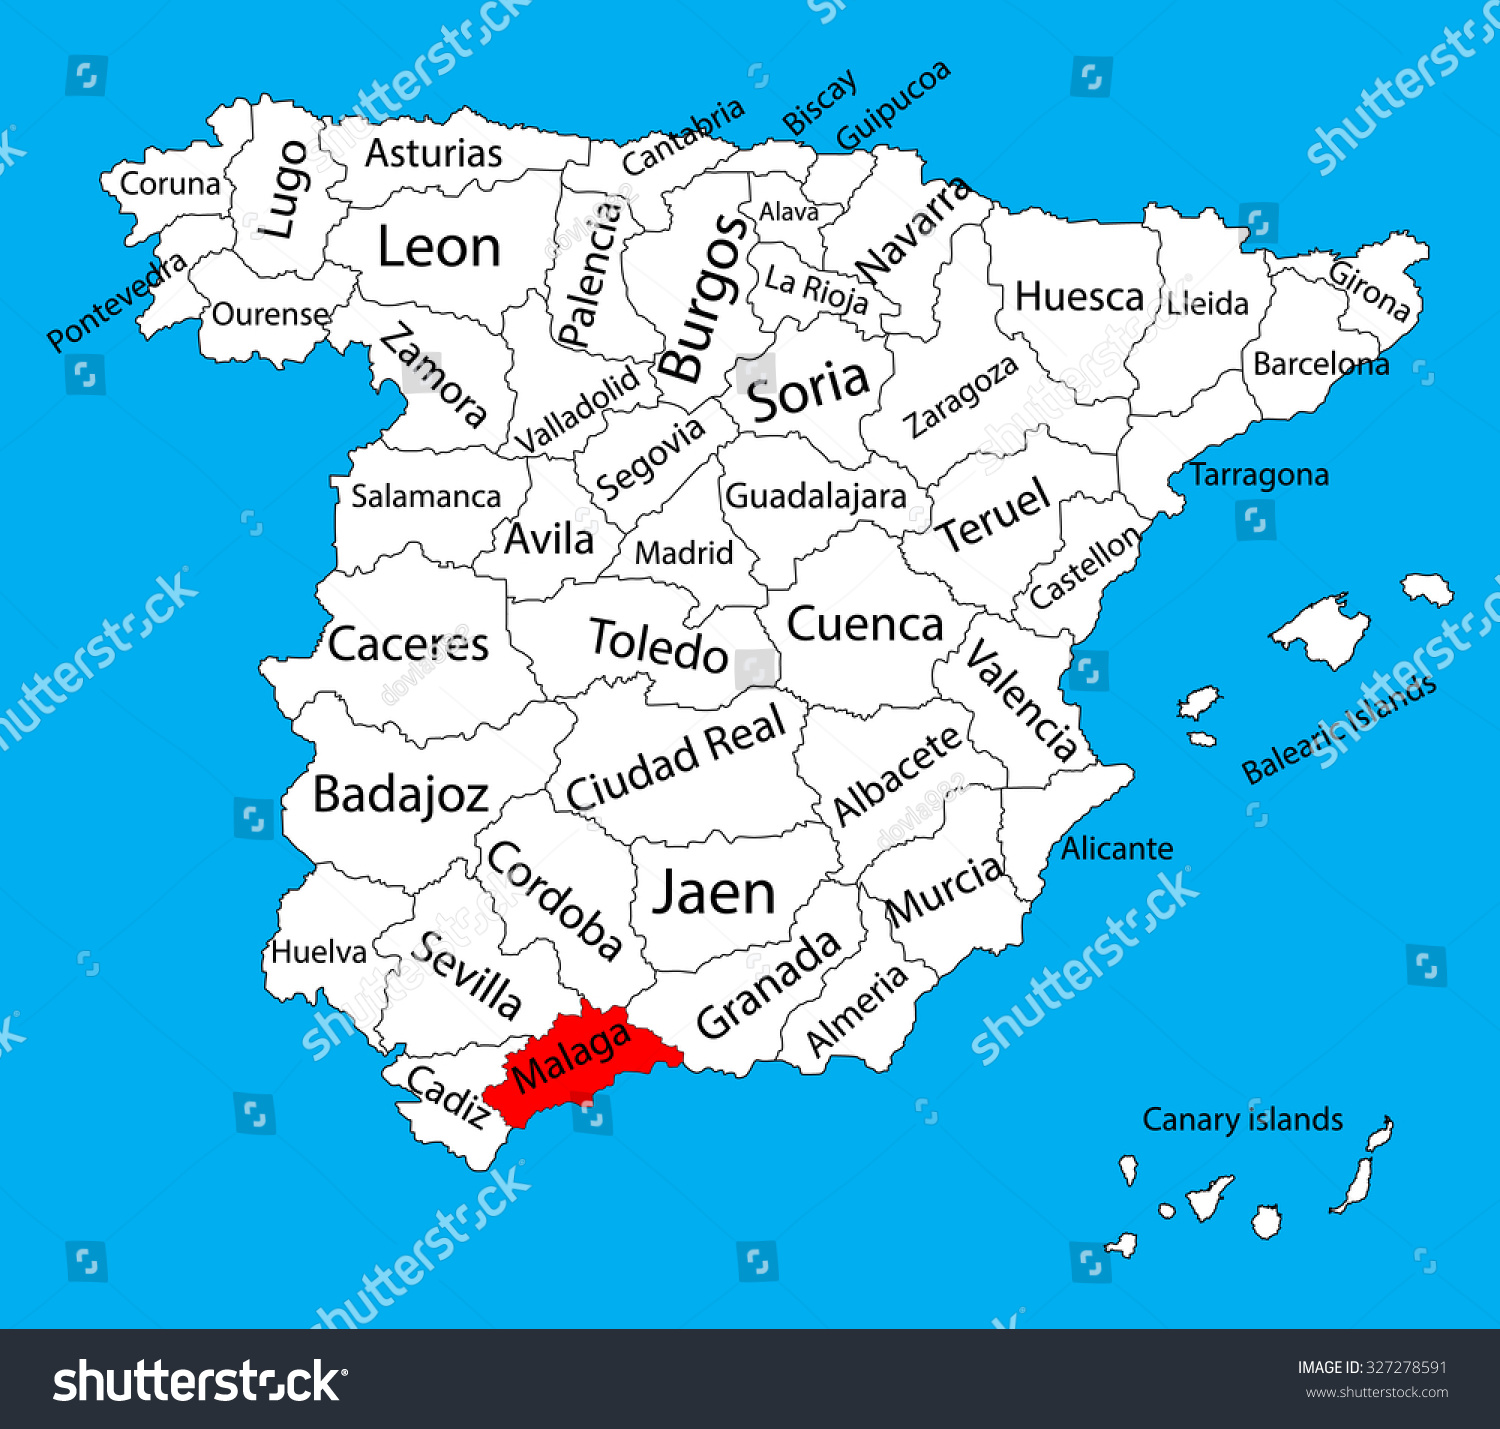 Map Of Malaga Area Spain.Malaga Map Silhouette Vector Spain Province Stock Vector Royalty